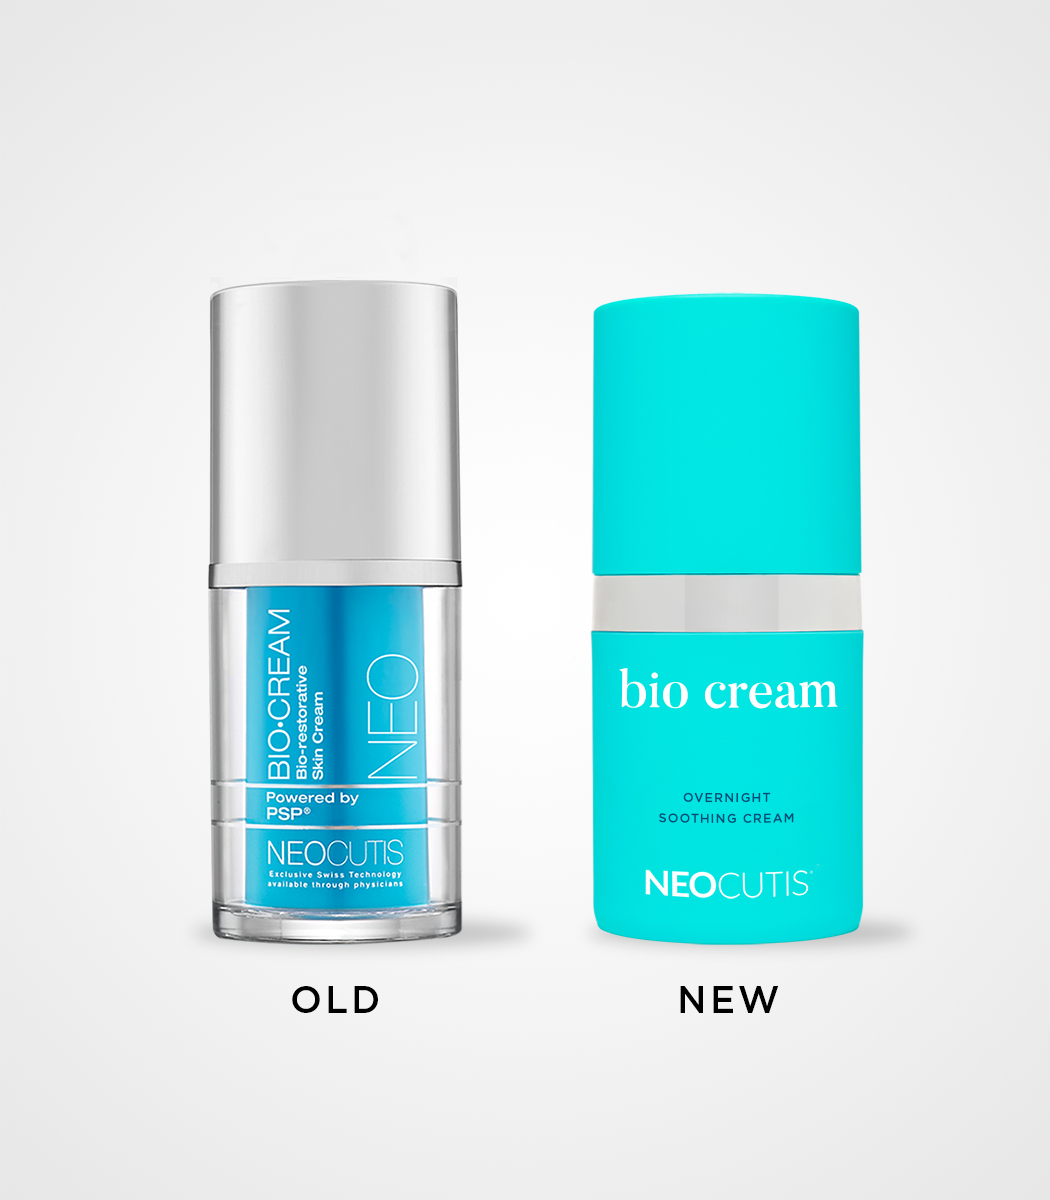 NEOCUTIS  Bio Cream | 1.69 Oz | 3 Month Supply | Boosts collagen to soothe skin and appearance of fine lines and wrinkles | Anti-aging power to nourish, rejuvenate & hydrate aging skin - New Look